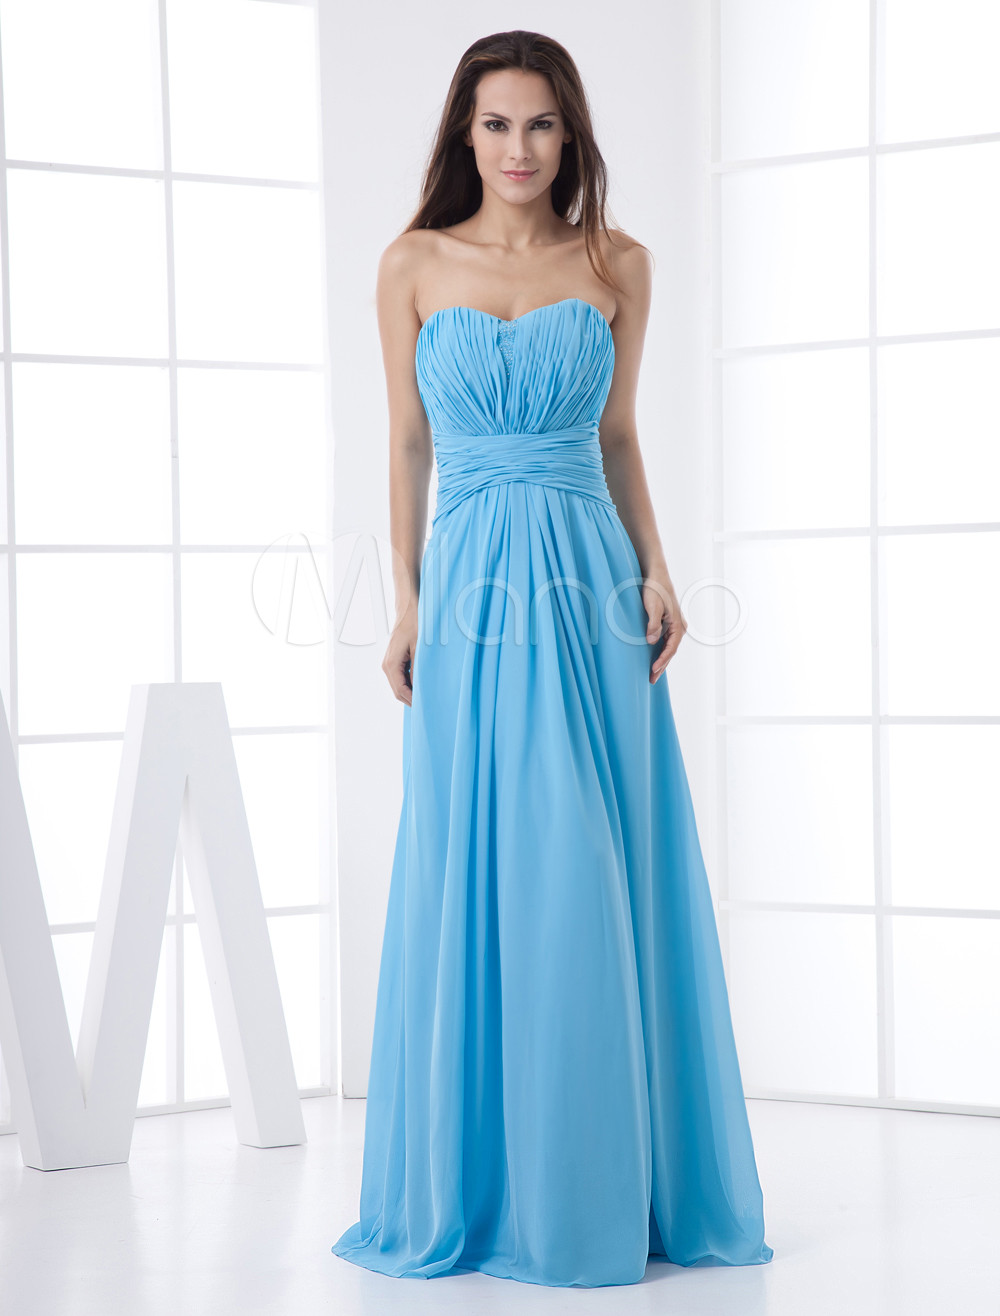 Chiffon Bridesmaid Dress Aqua Draped Backless A Line Maxi Prom Dress